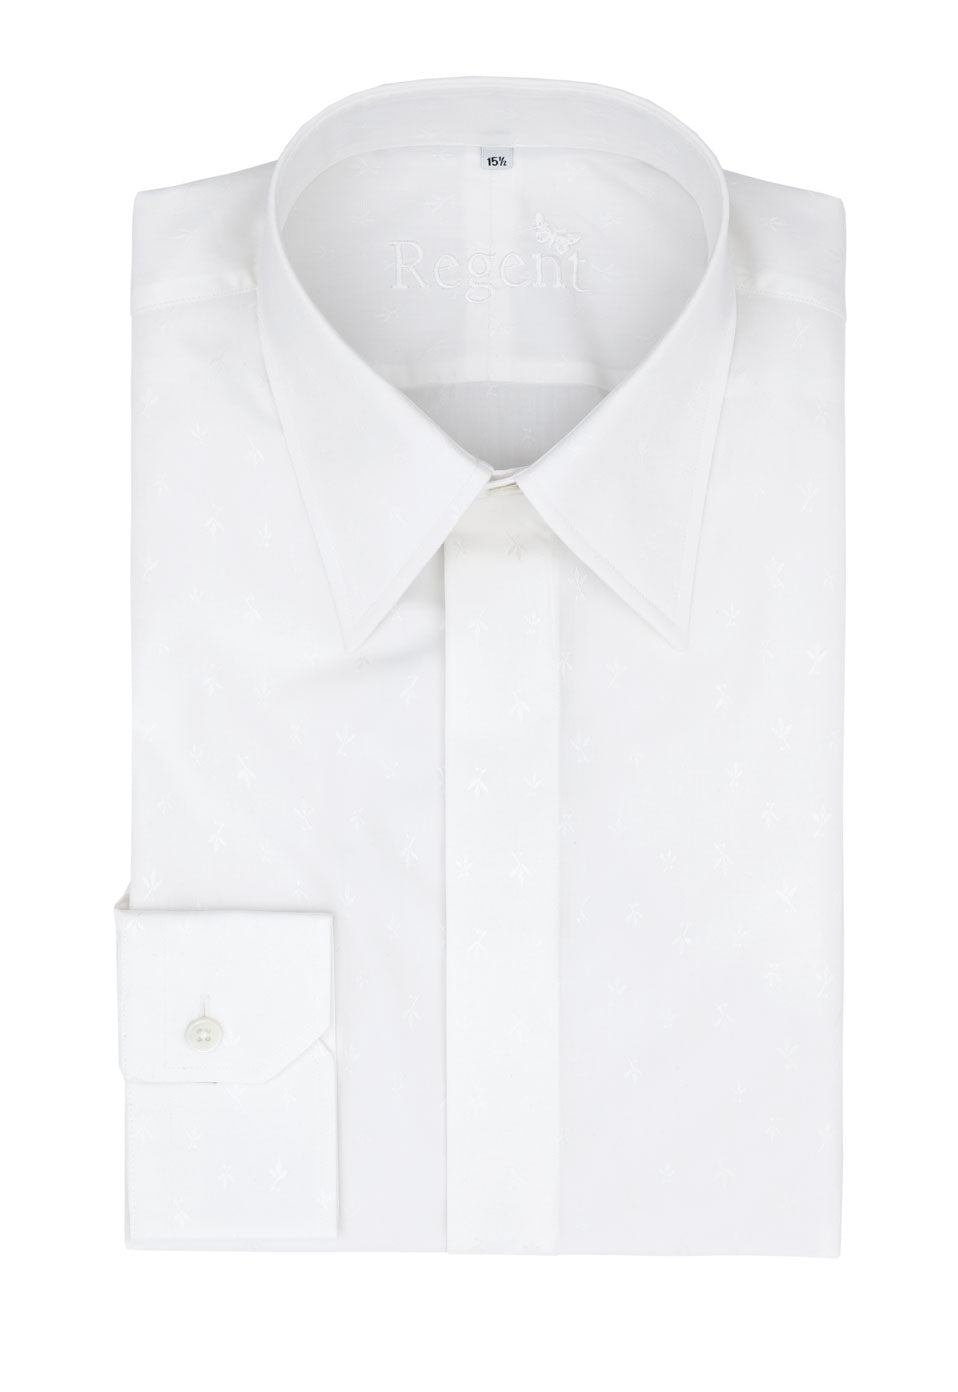 Regent - 100% White Cotton Shirt - White Fleur de Lis - King Collar - Regent Tailoring